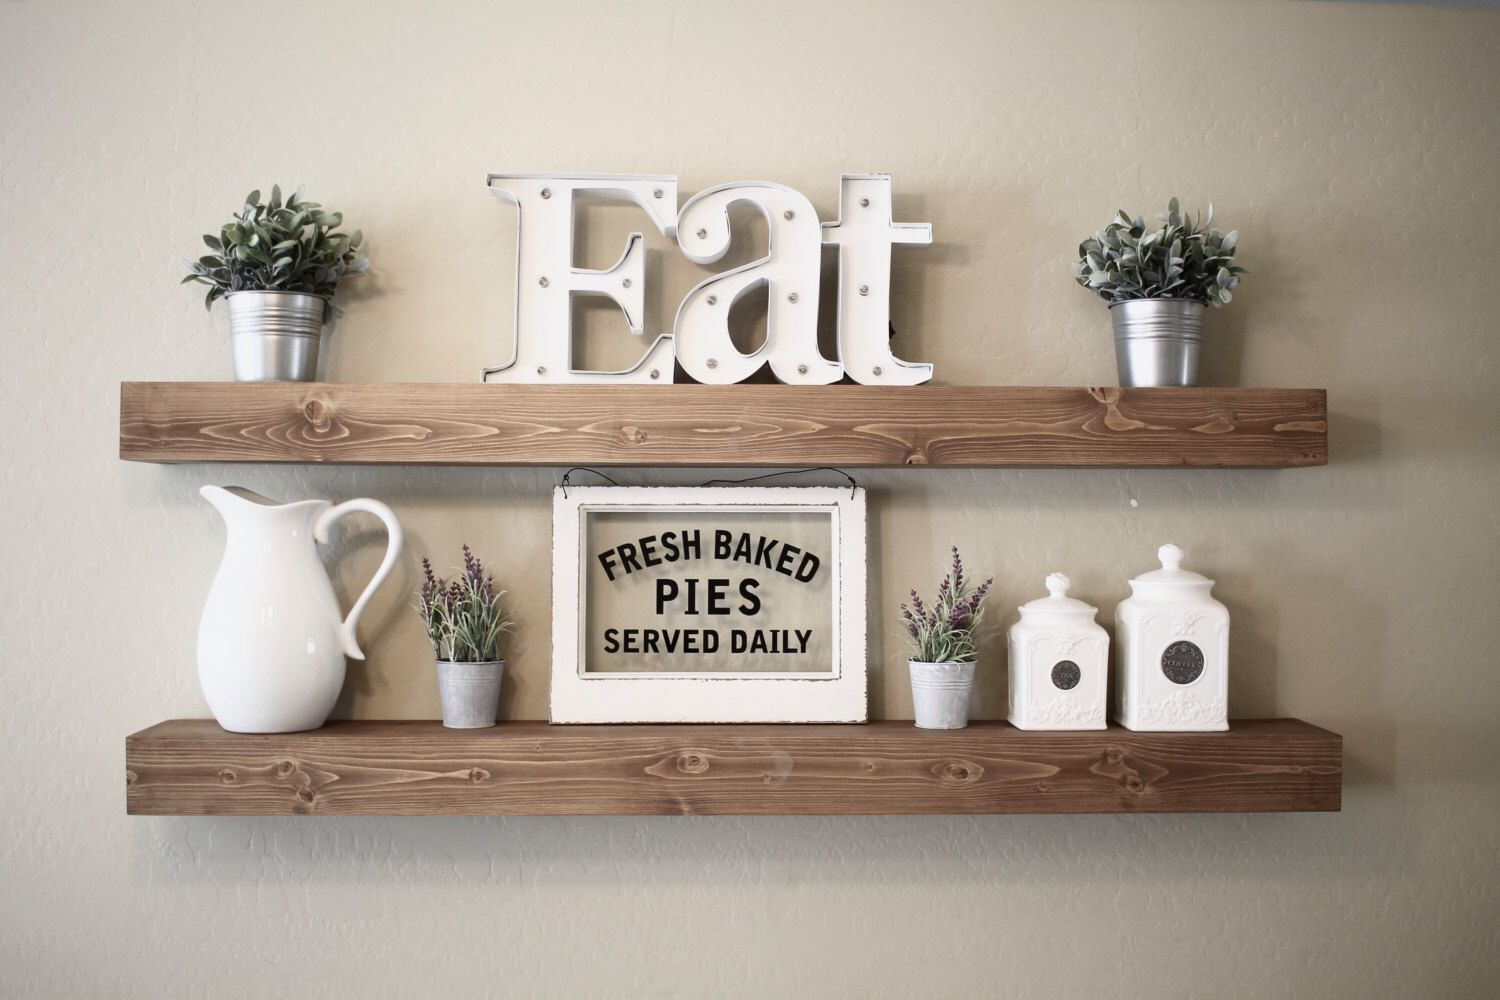 Dining Room Wall Shelves Pin By J Boom On Decorating Ideas In 2019 Ledge Shelf